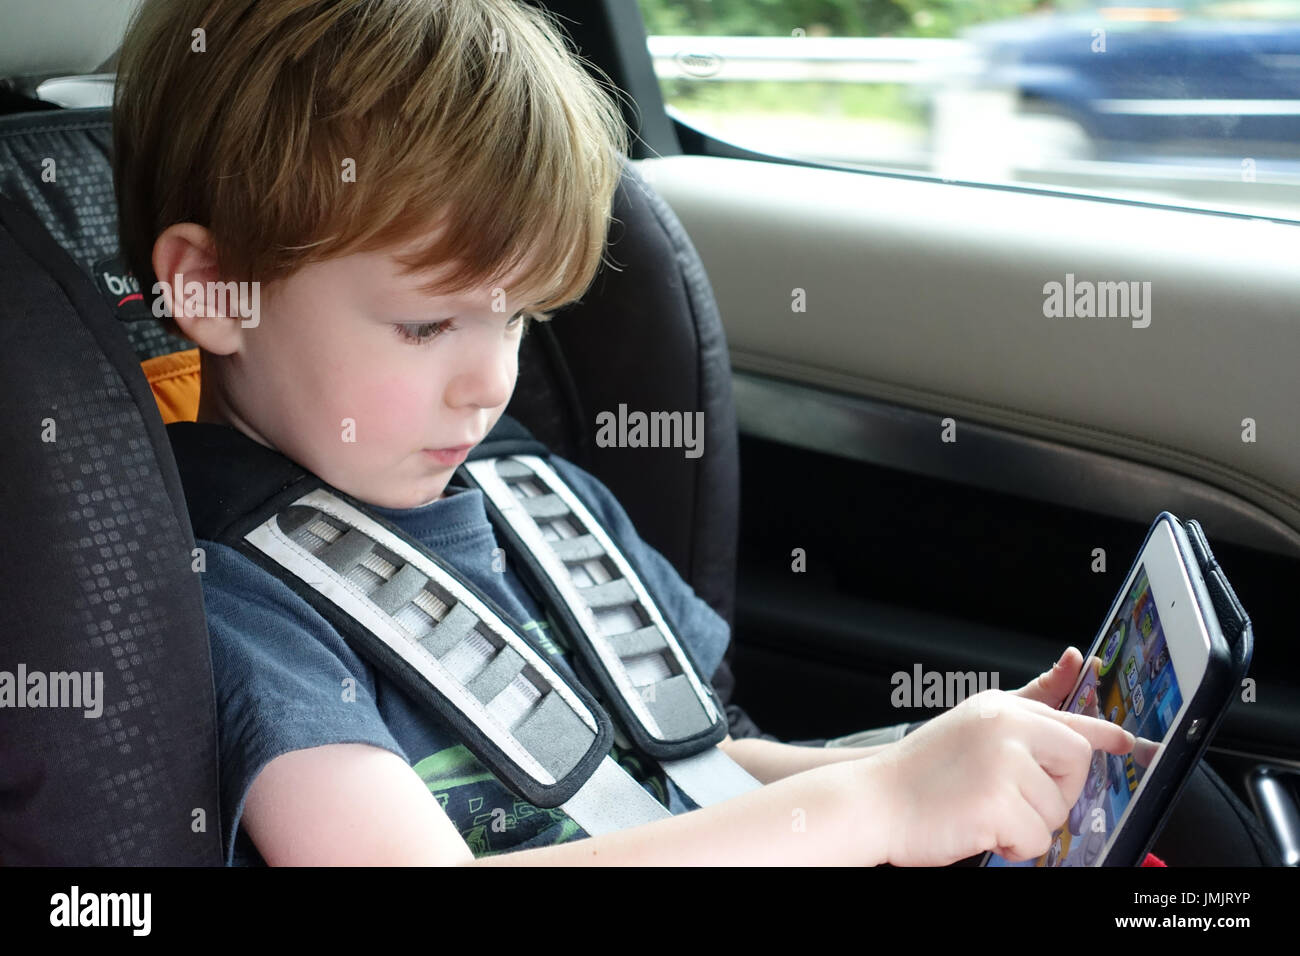 Child playing on an iPad during a car journey - Stock Image